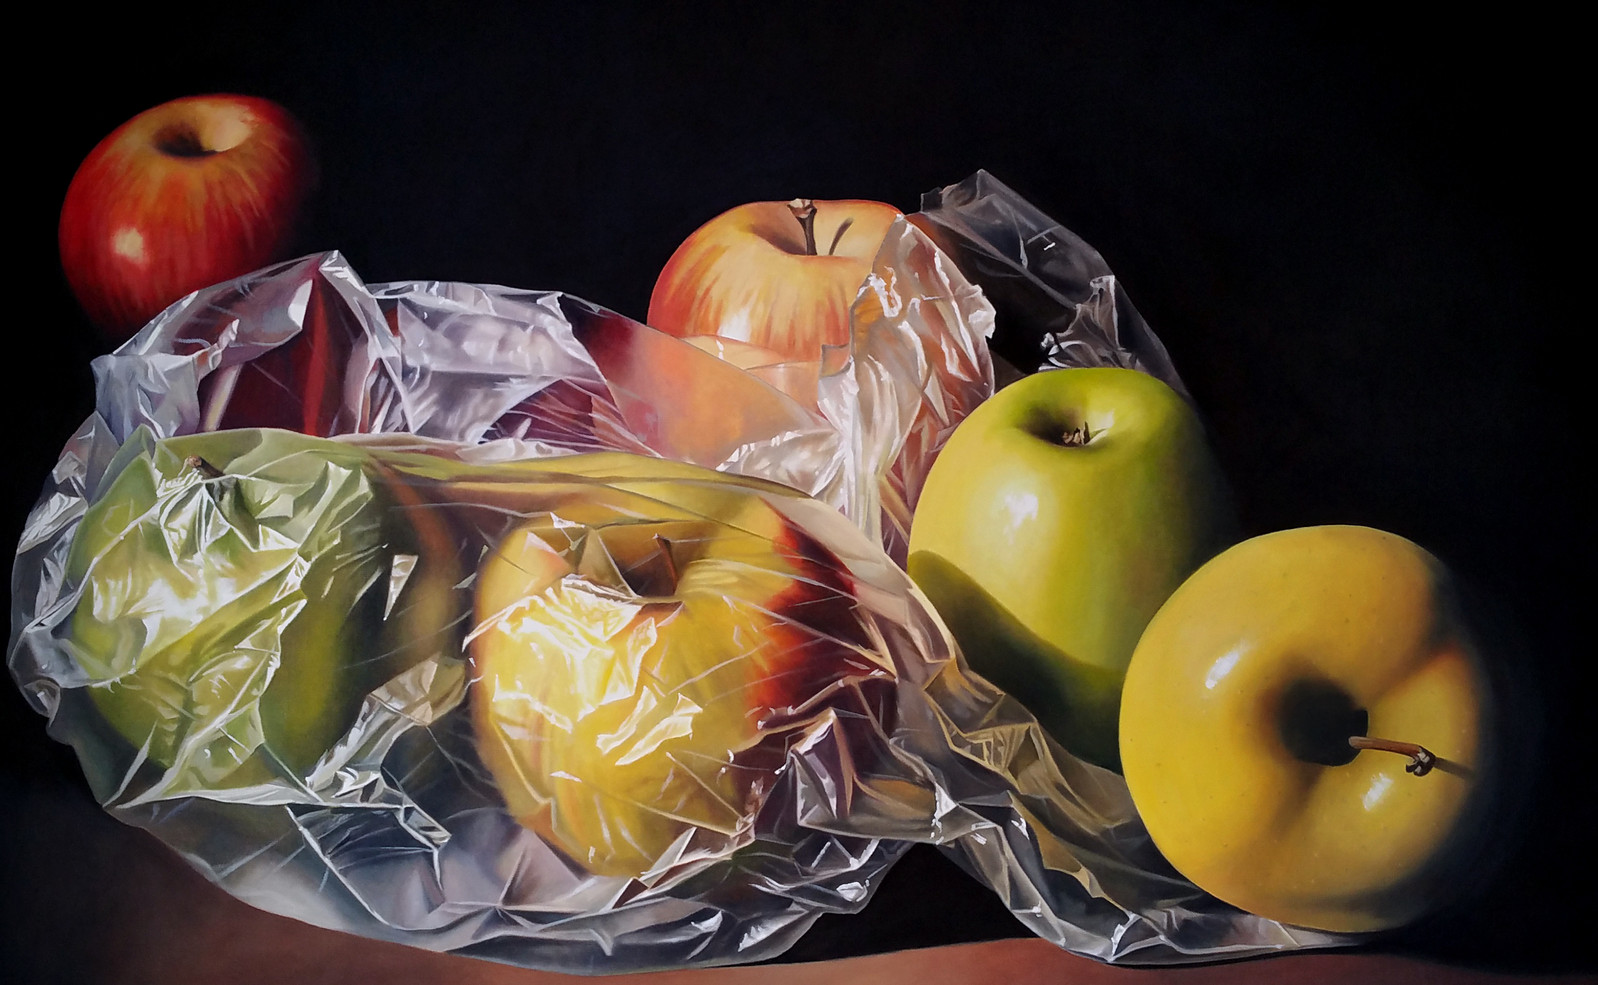 produce bag and apples